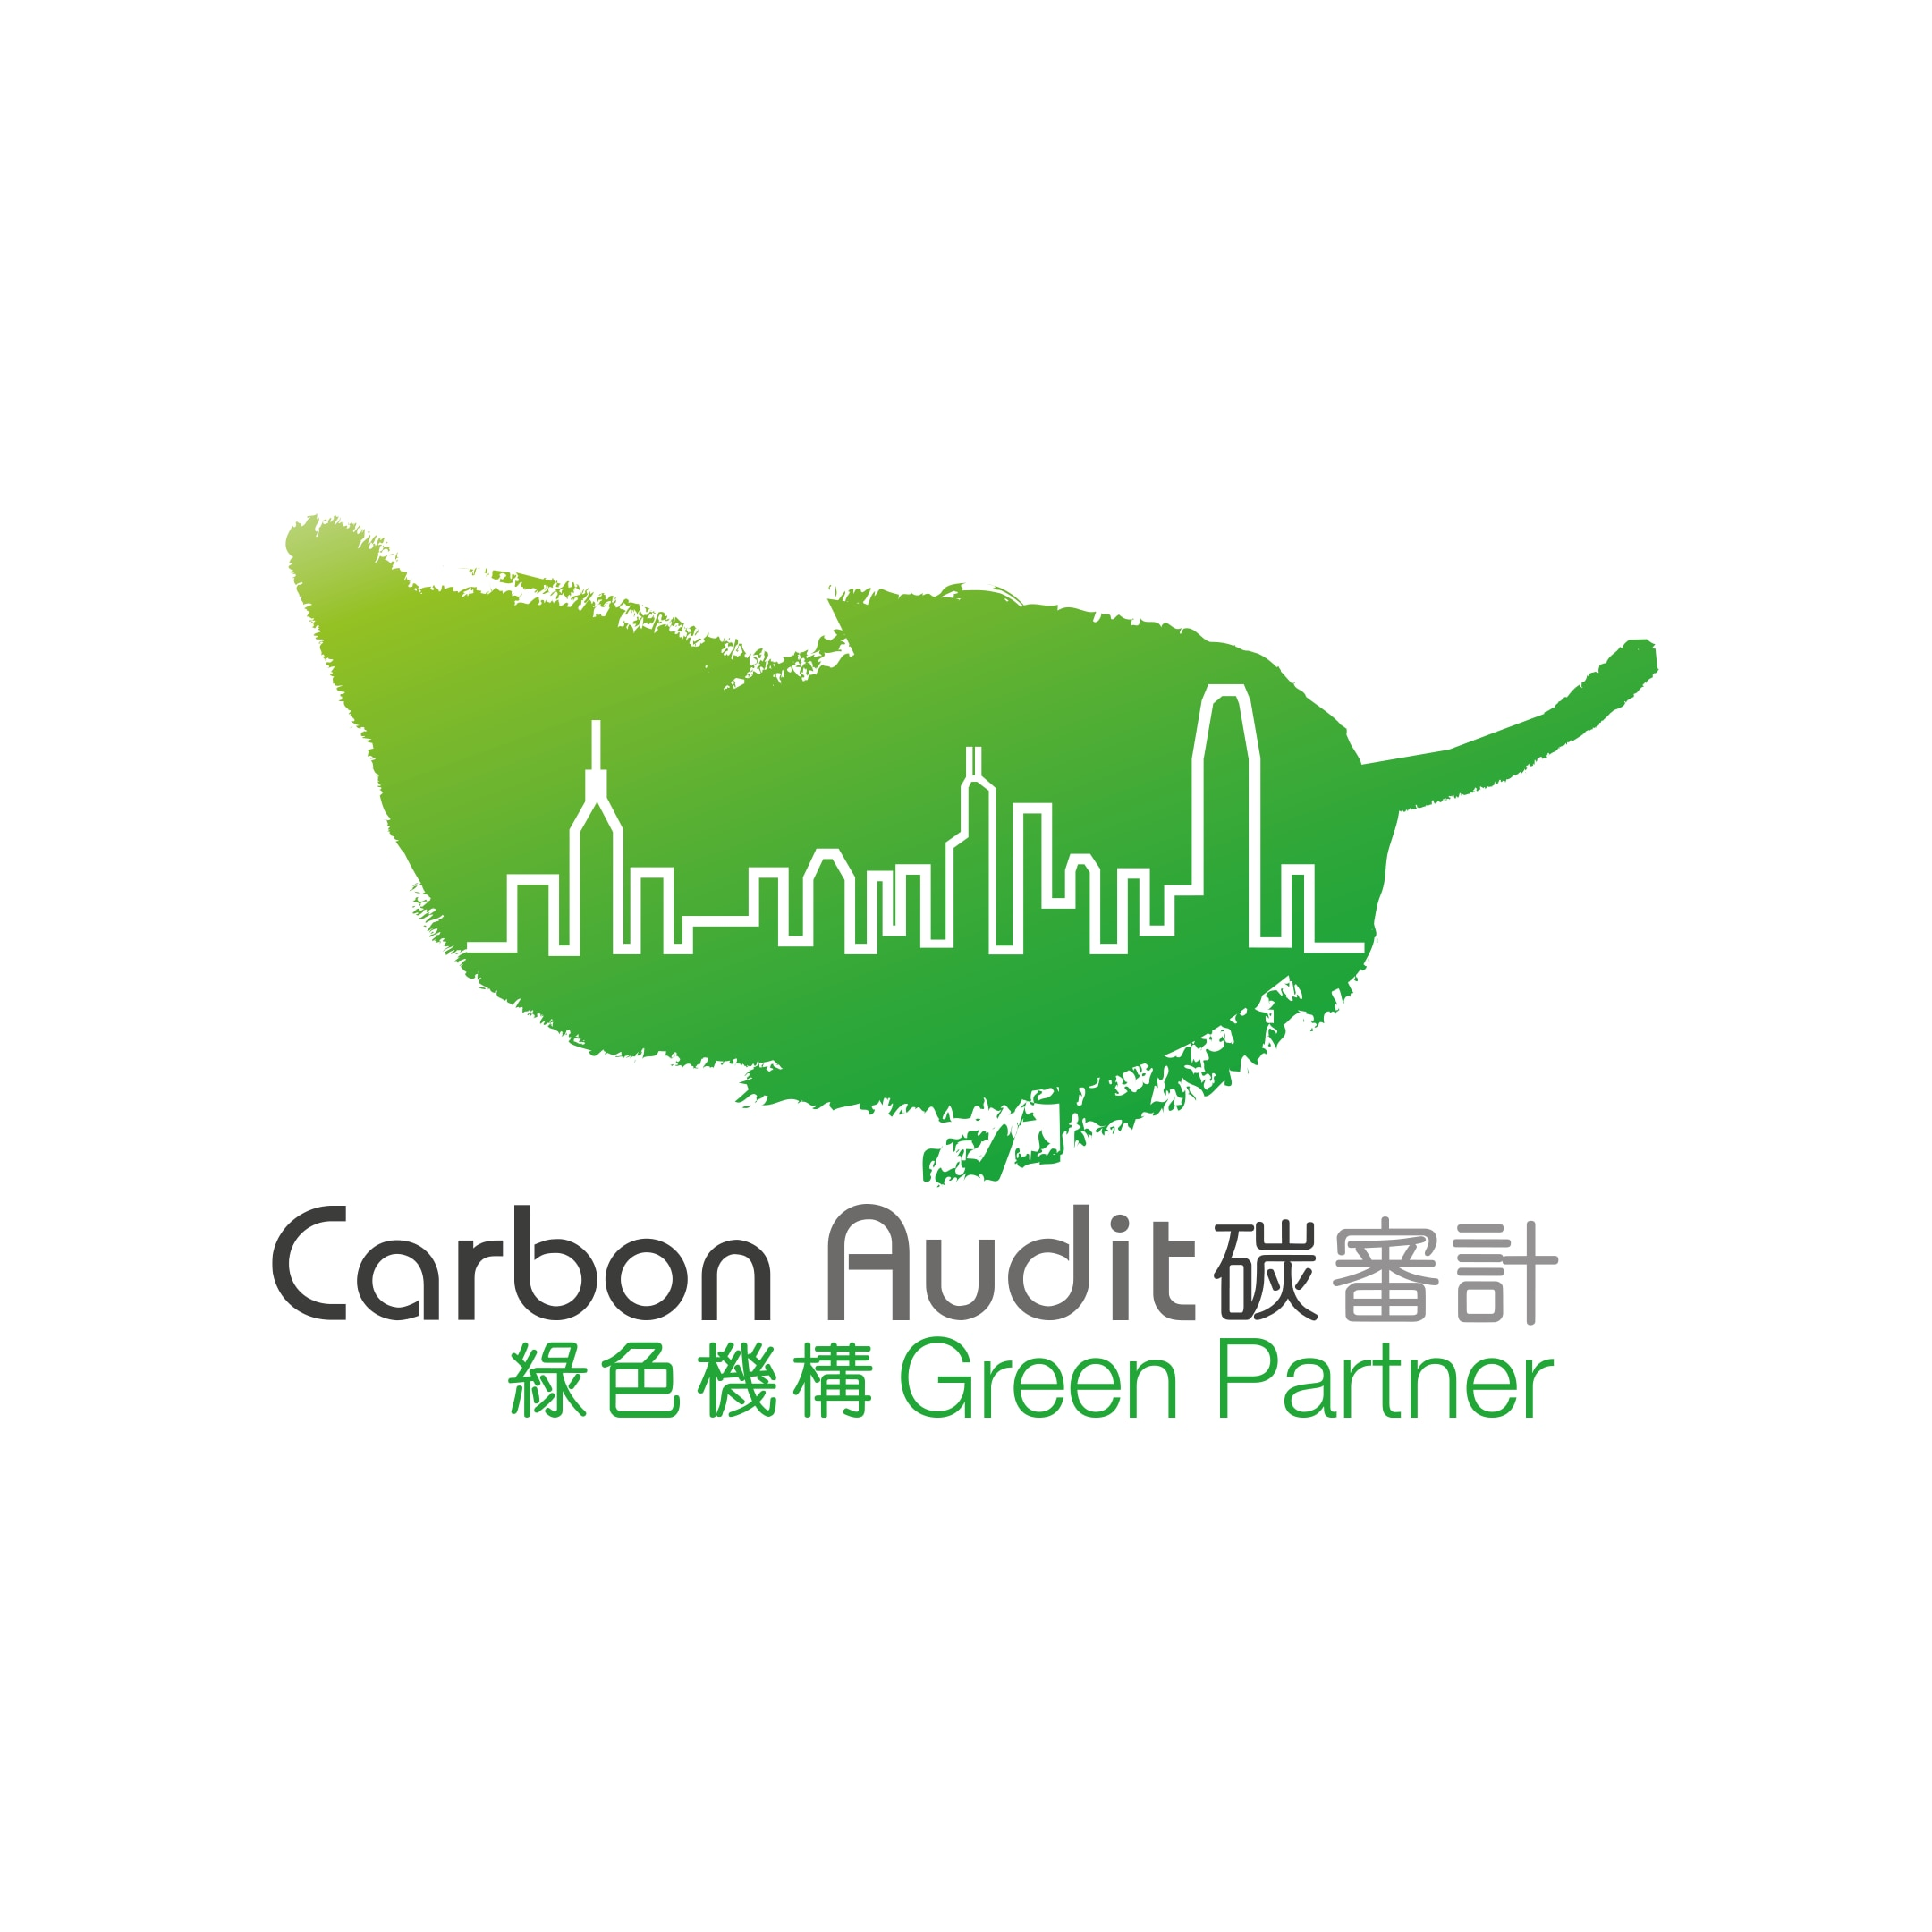 Lidl Hong Kong Limited - Corporate Responsibility - Green Hong Kong Carbon Audit